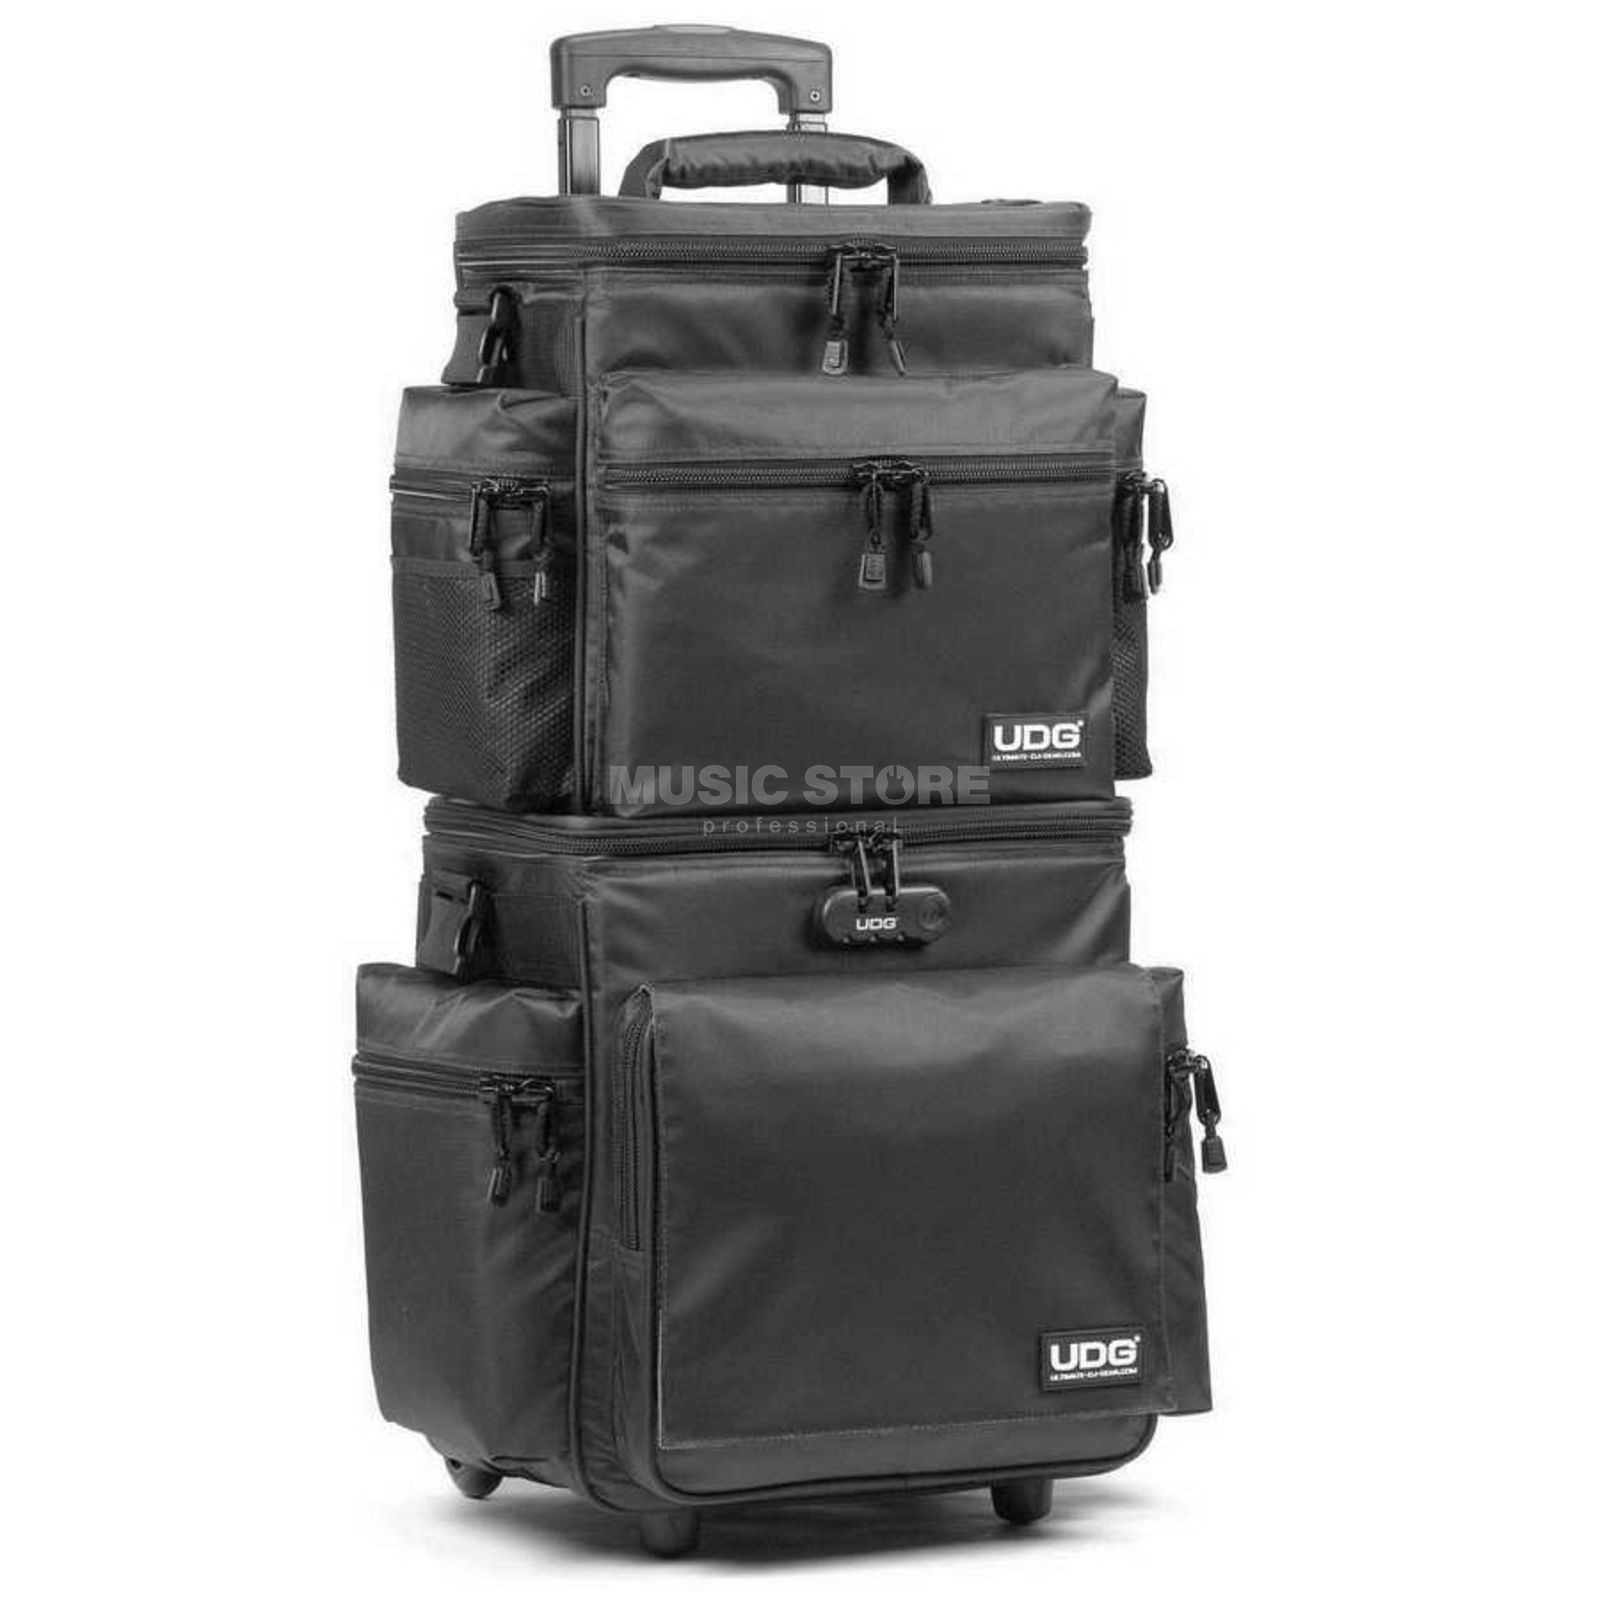 UDG Sling Bag Trolley Set Deluxe black/orange inside U9679BL/OR Изображение товара